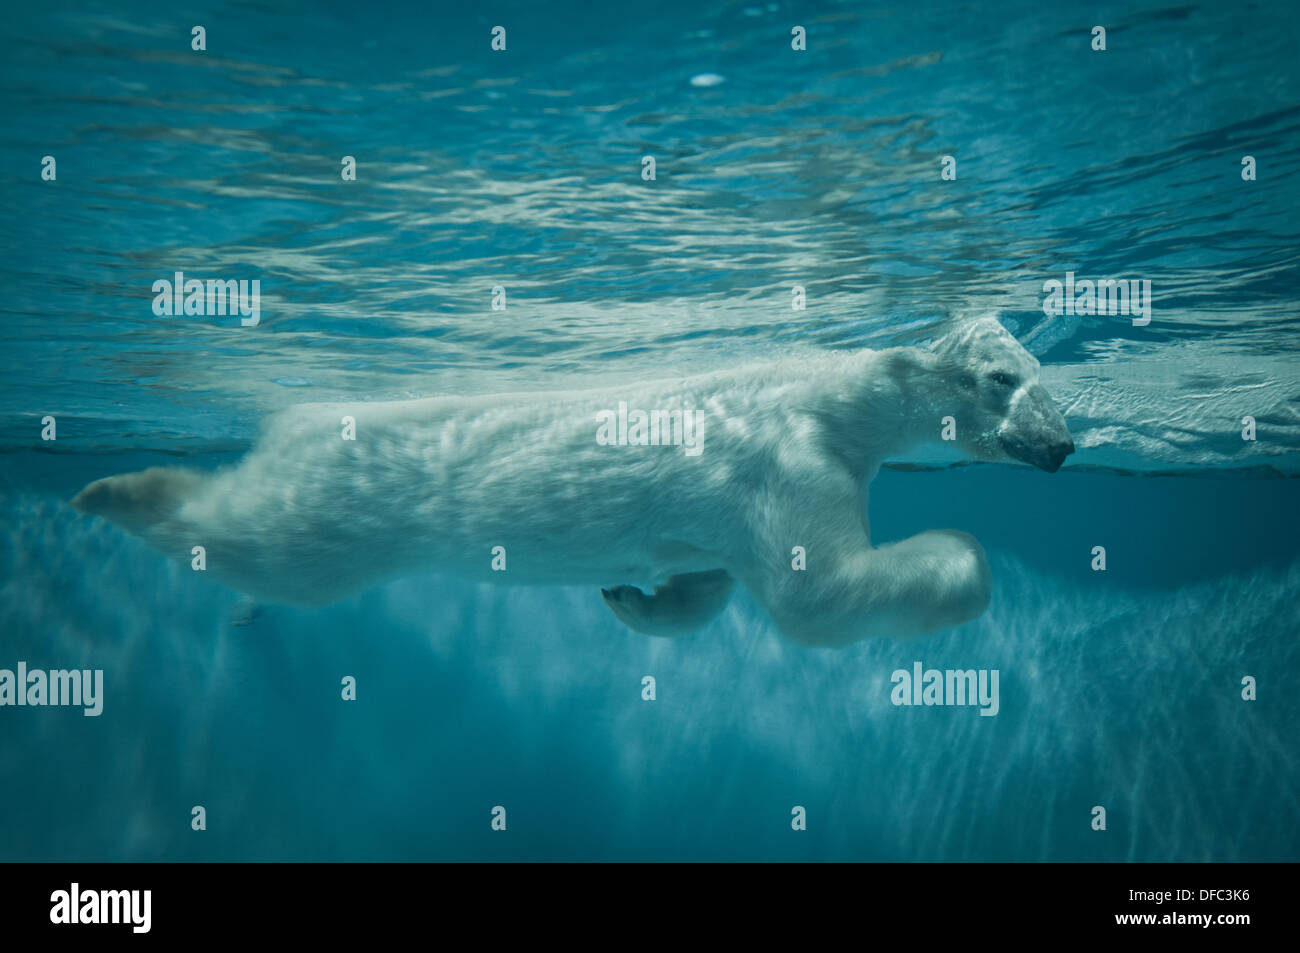 Swimming polar bear in Beijing Zoo, located in Xicheng District, Beijing, China - Stock Image